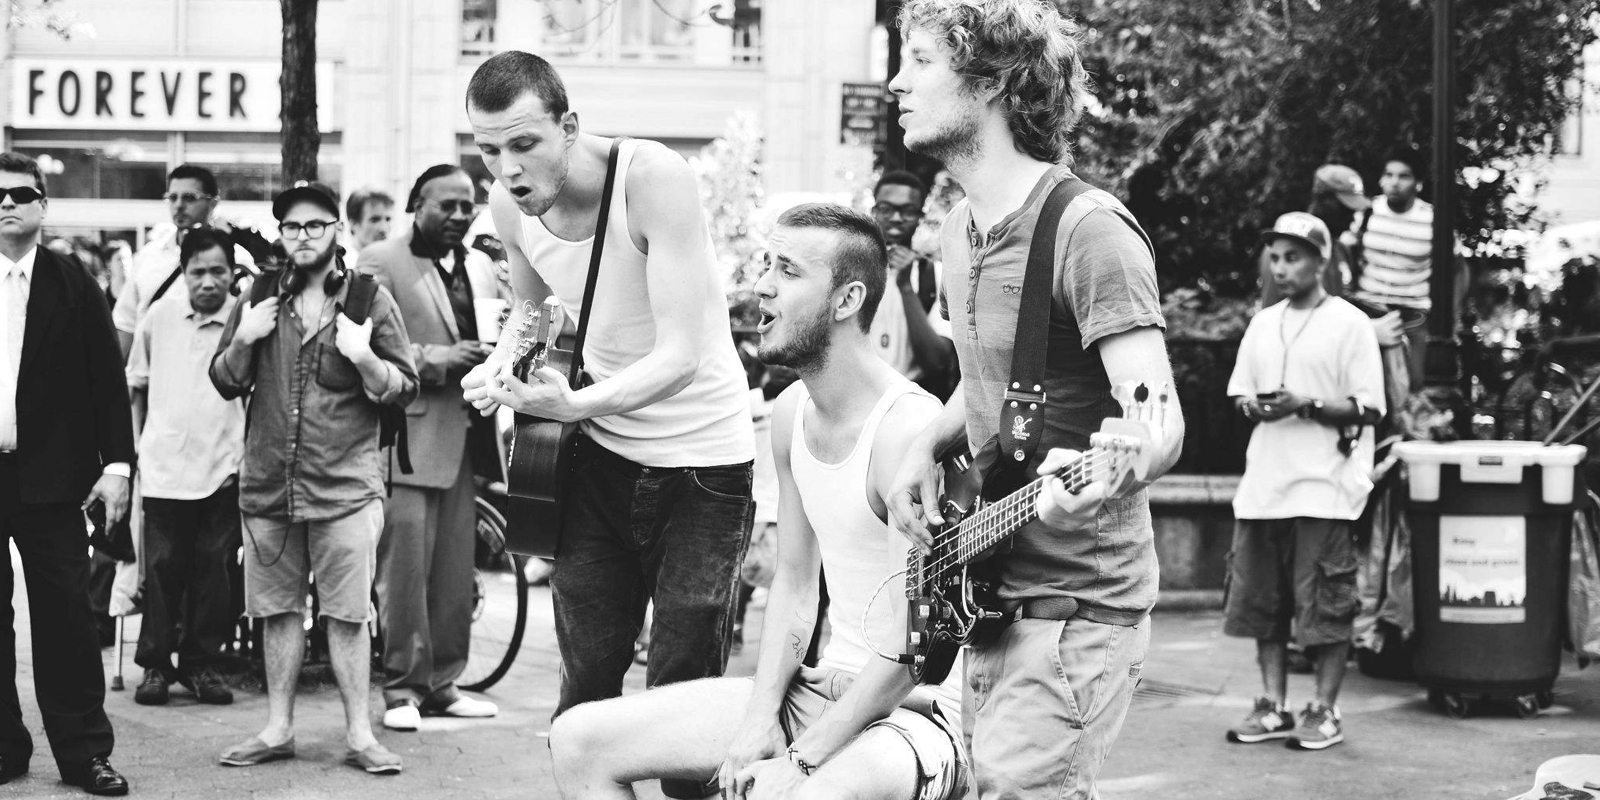 brothers moving choir streets nils sørensen bass aske knoblauch guitar simon knoblauch cajon